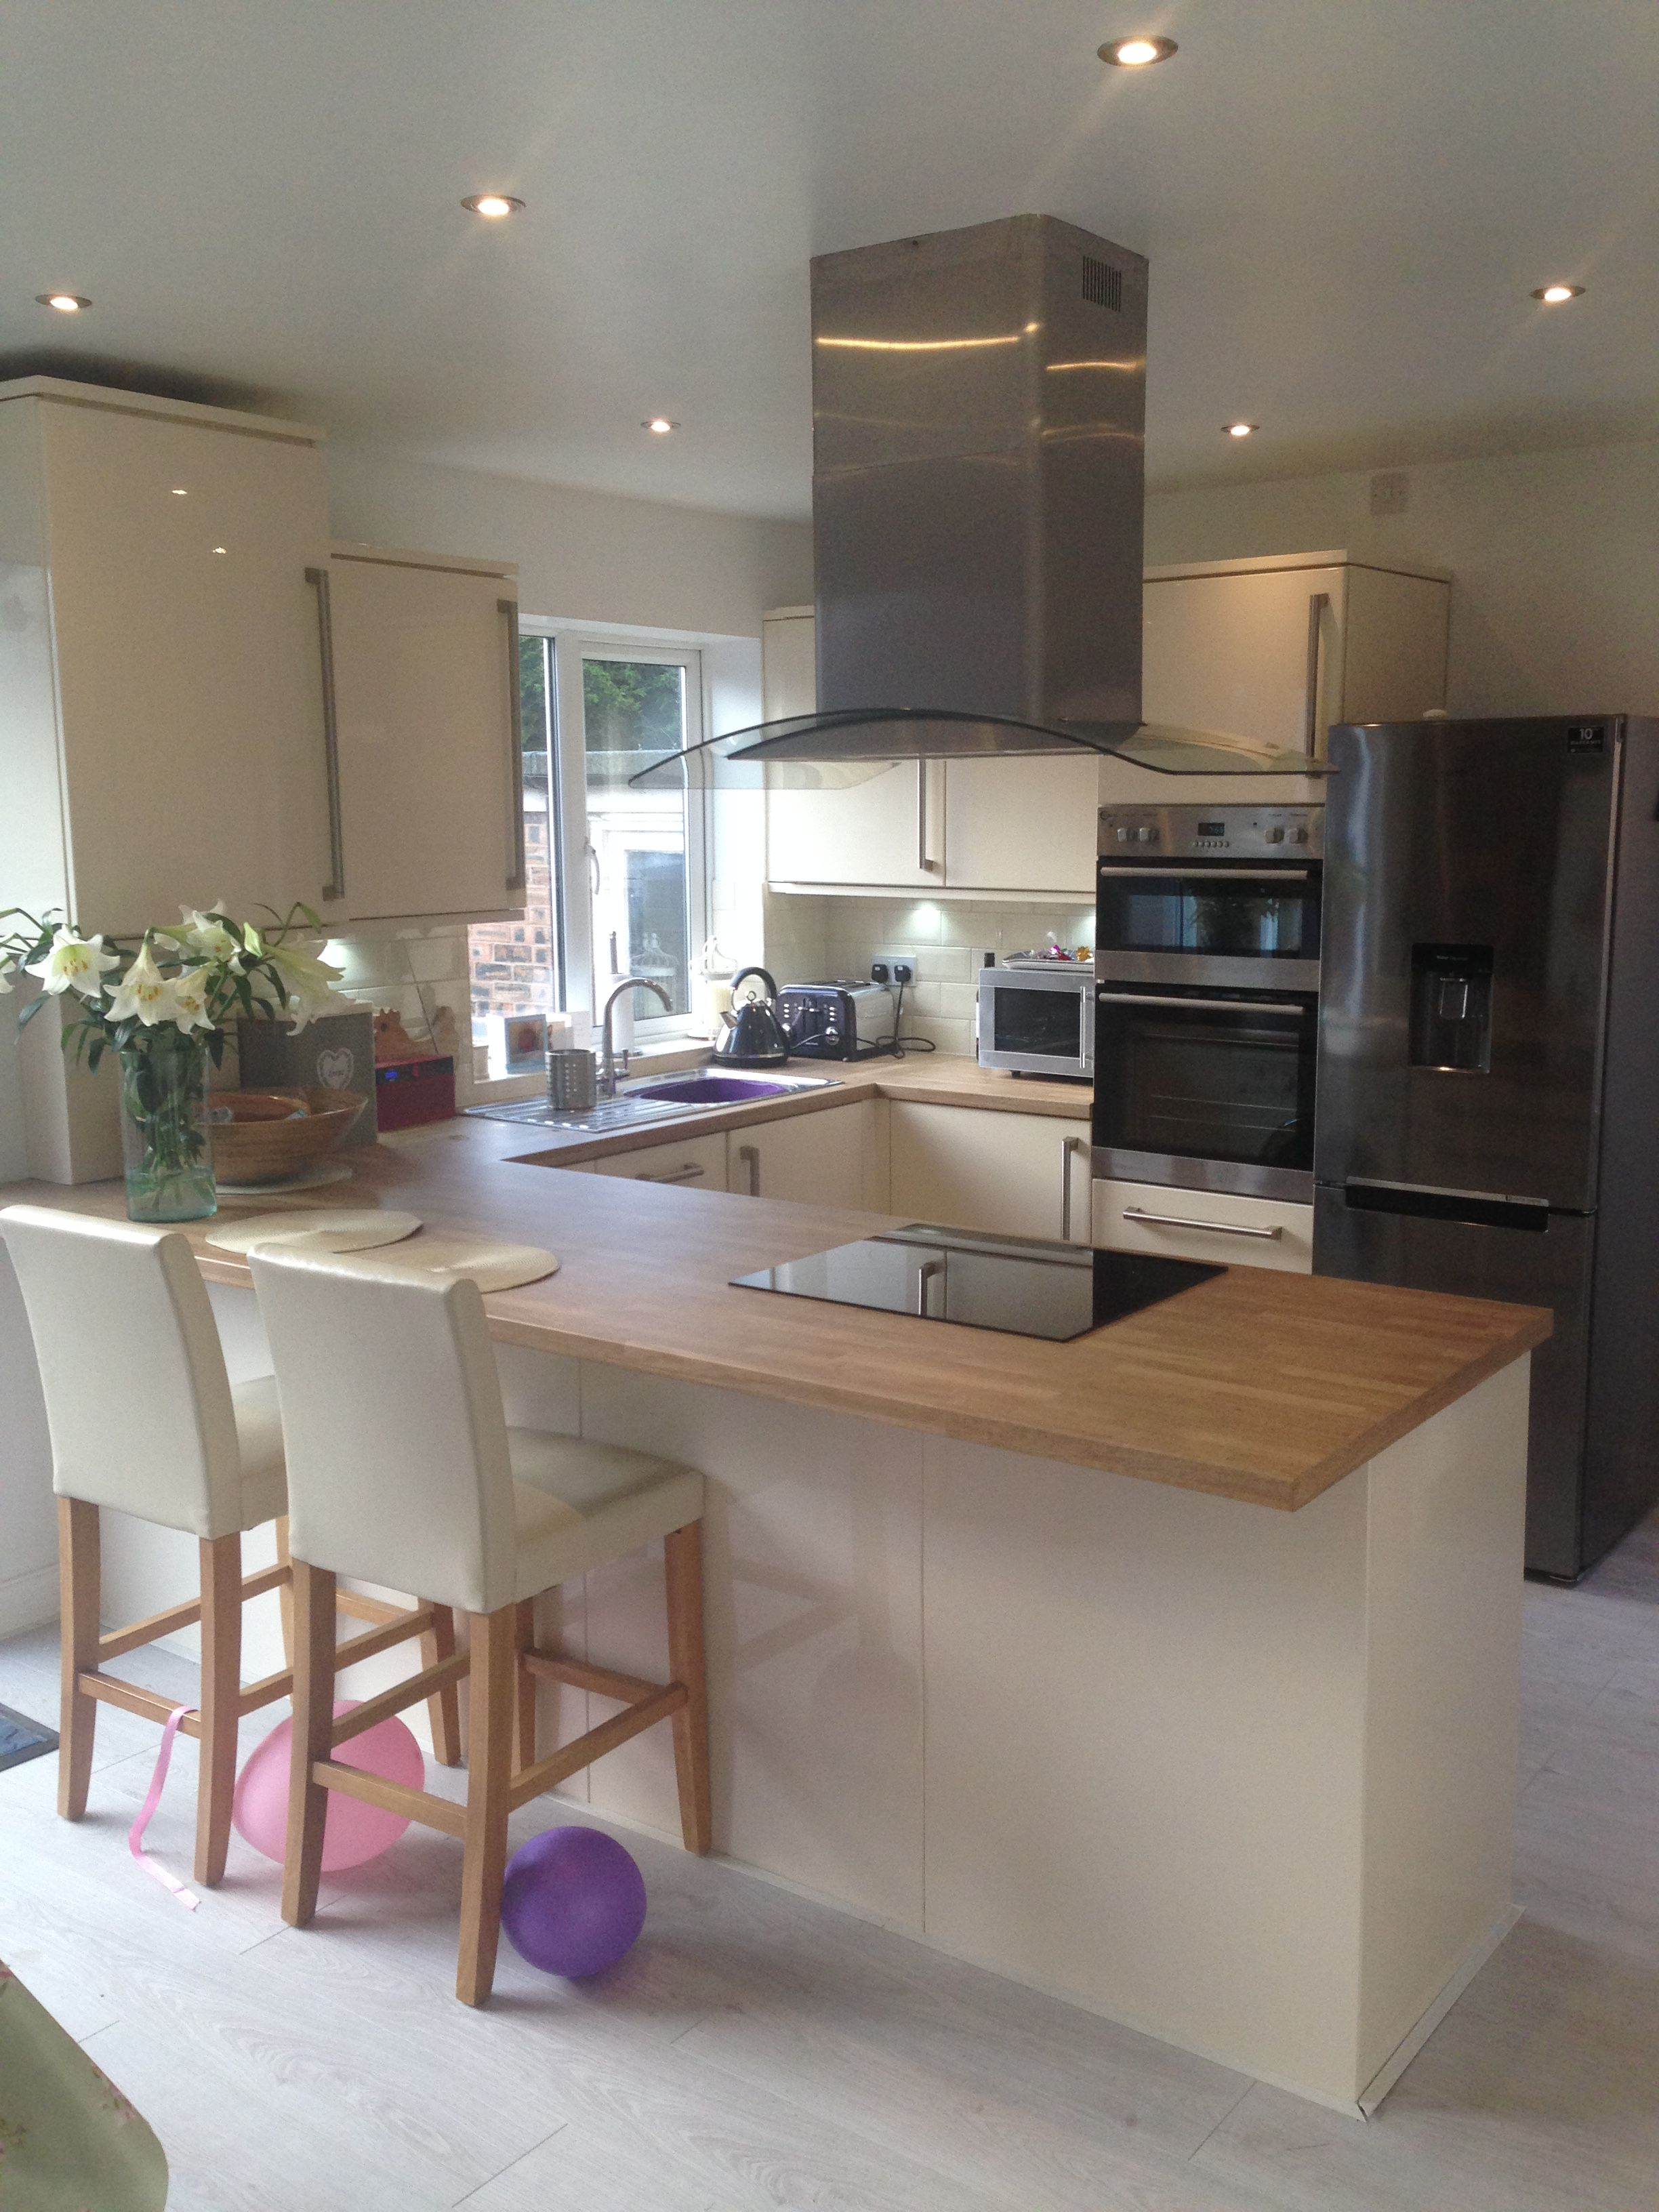 Cream high gloss kitchen diner induction hob knock through kitchen by Kitchens By Choice Manchester http://amzn.to/2jlTh5k